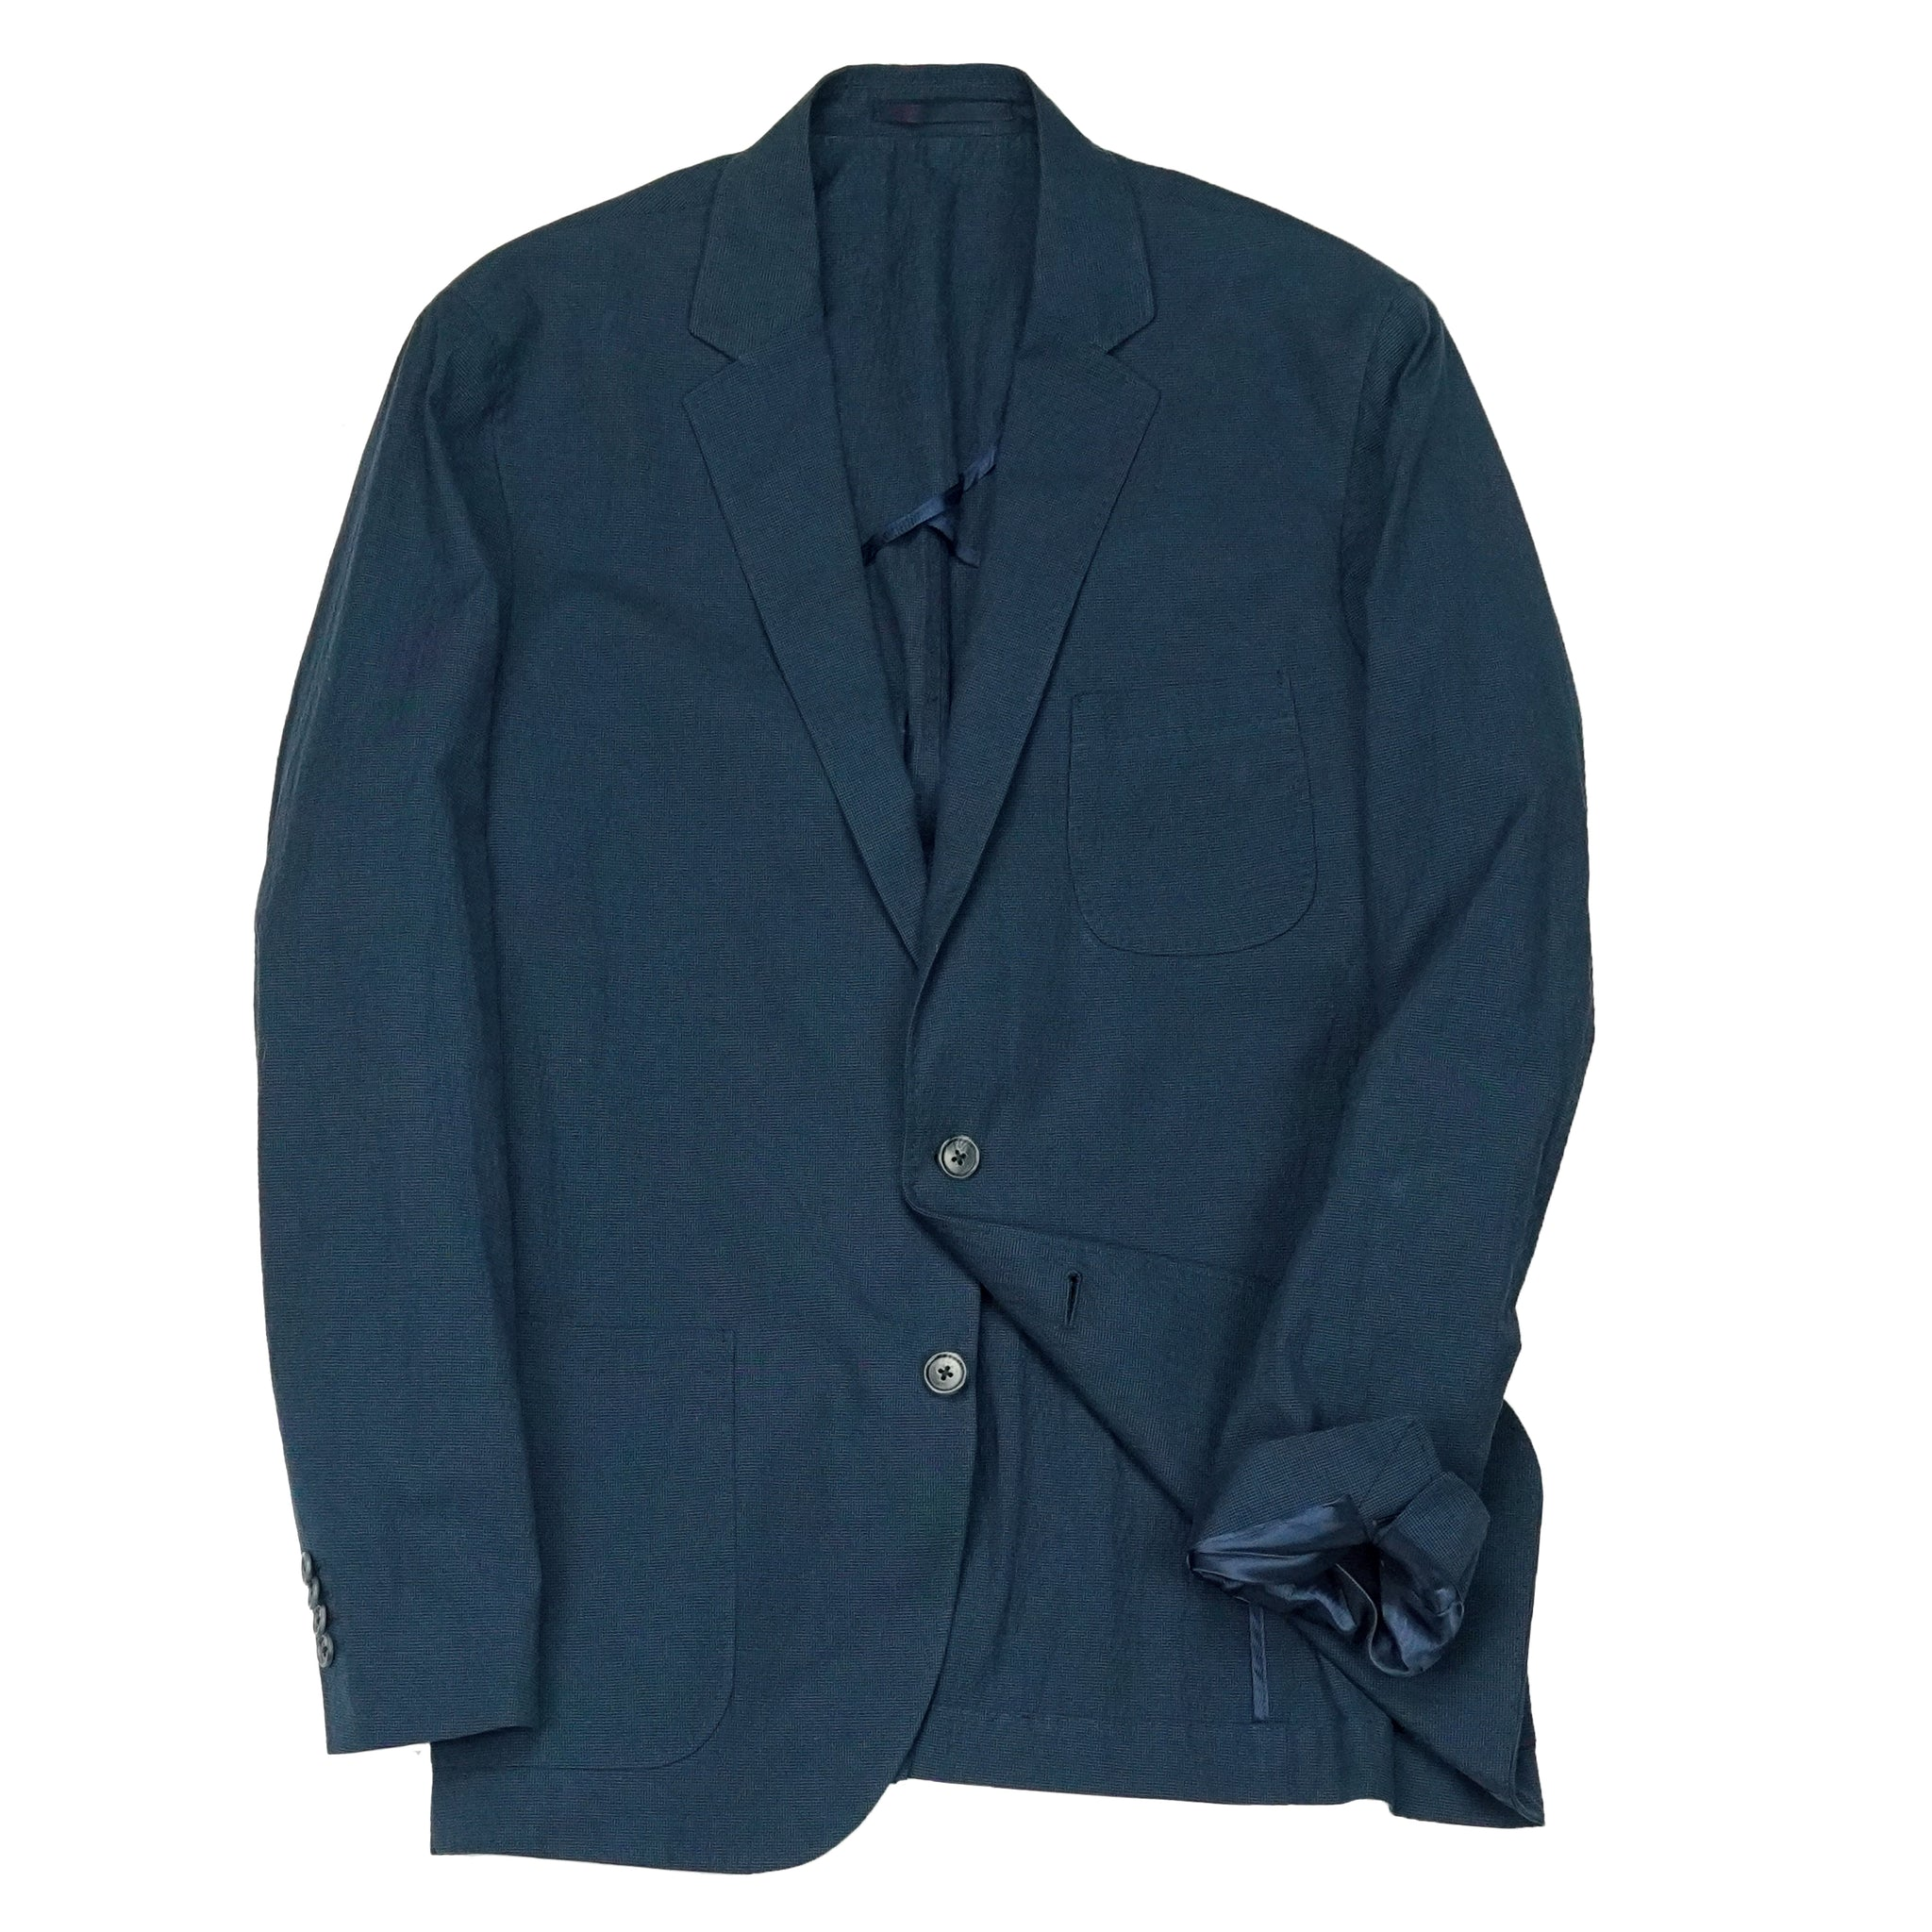 Gentleman's Jacket: Dusty Blue Seersucker